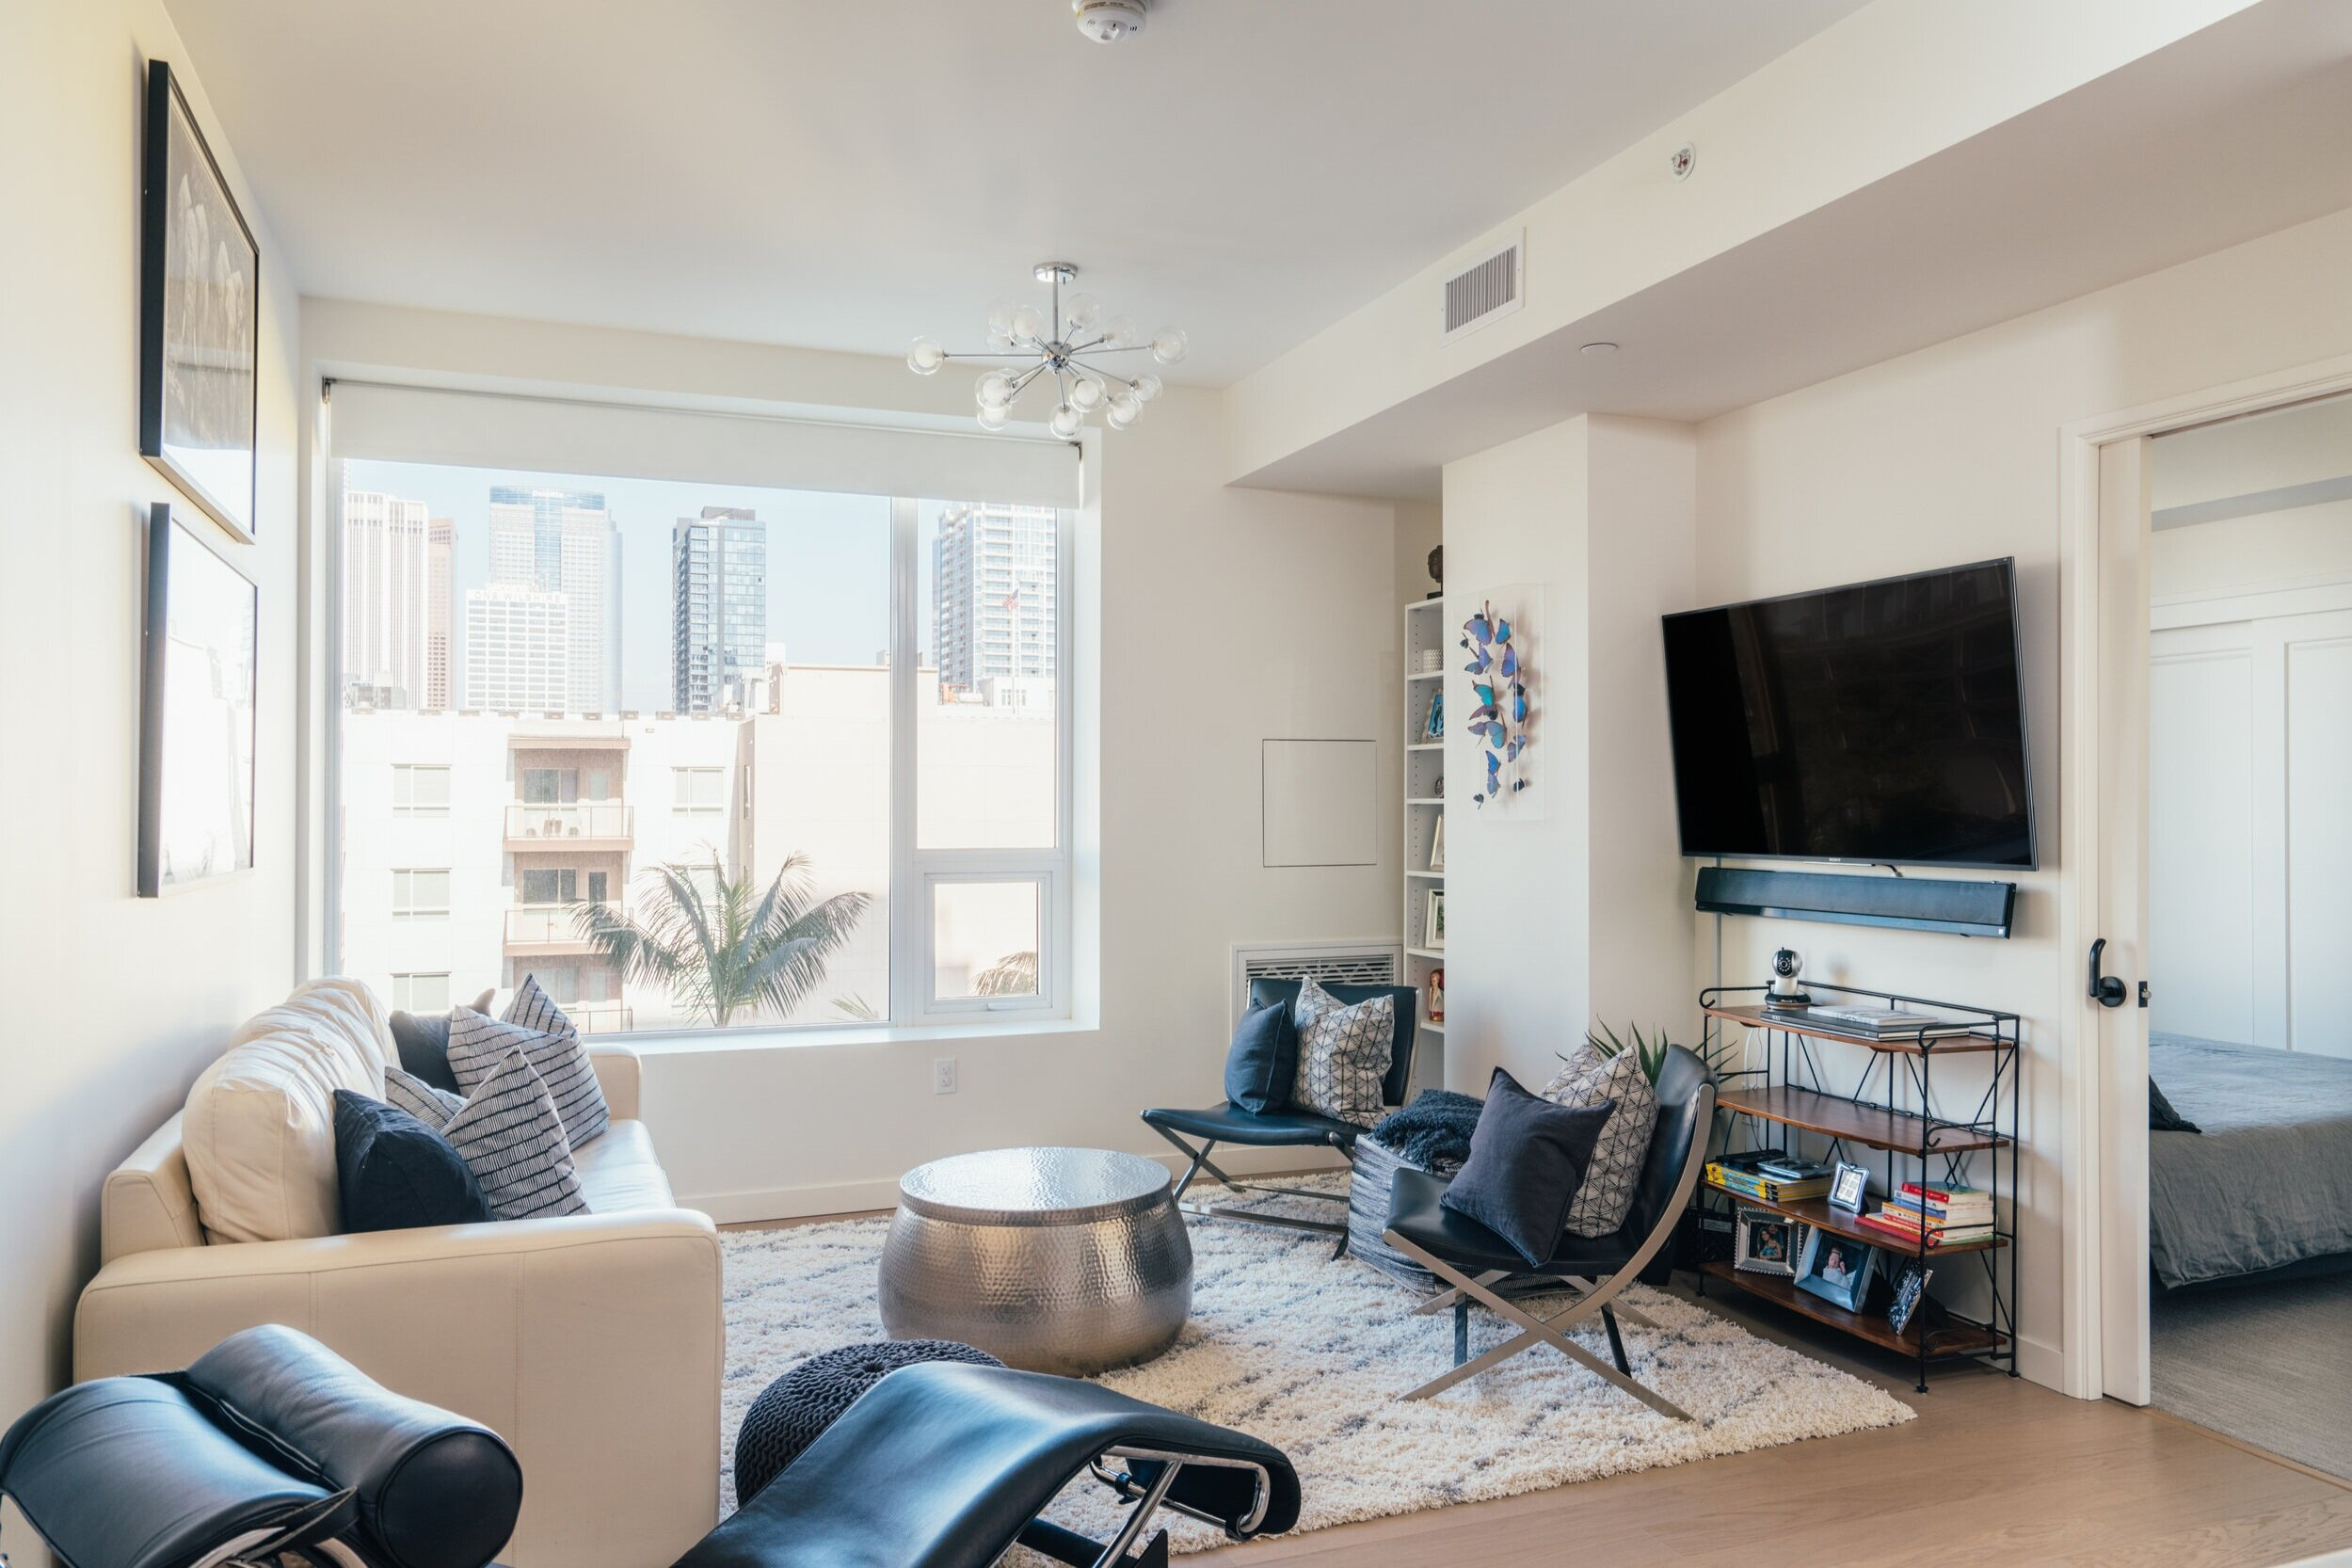 1050 S. Grand Ave #808 - Los Angeles , CA 90015$785,000   Beds: 1.5   Baths: 1   SqFt: 898